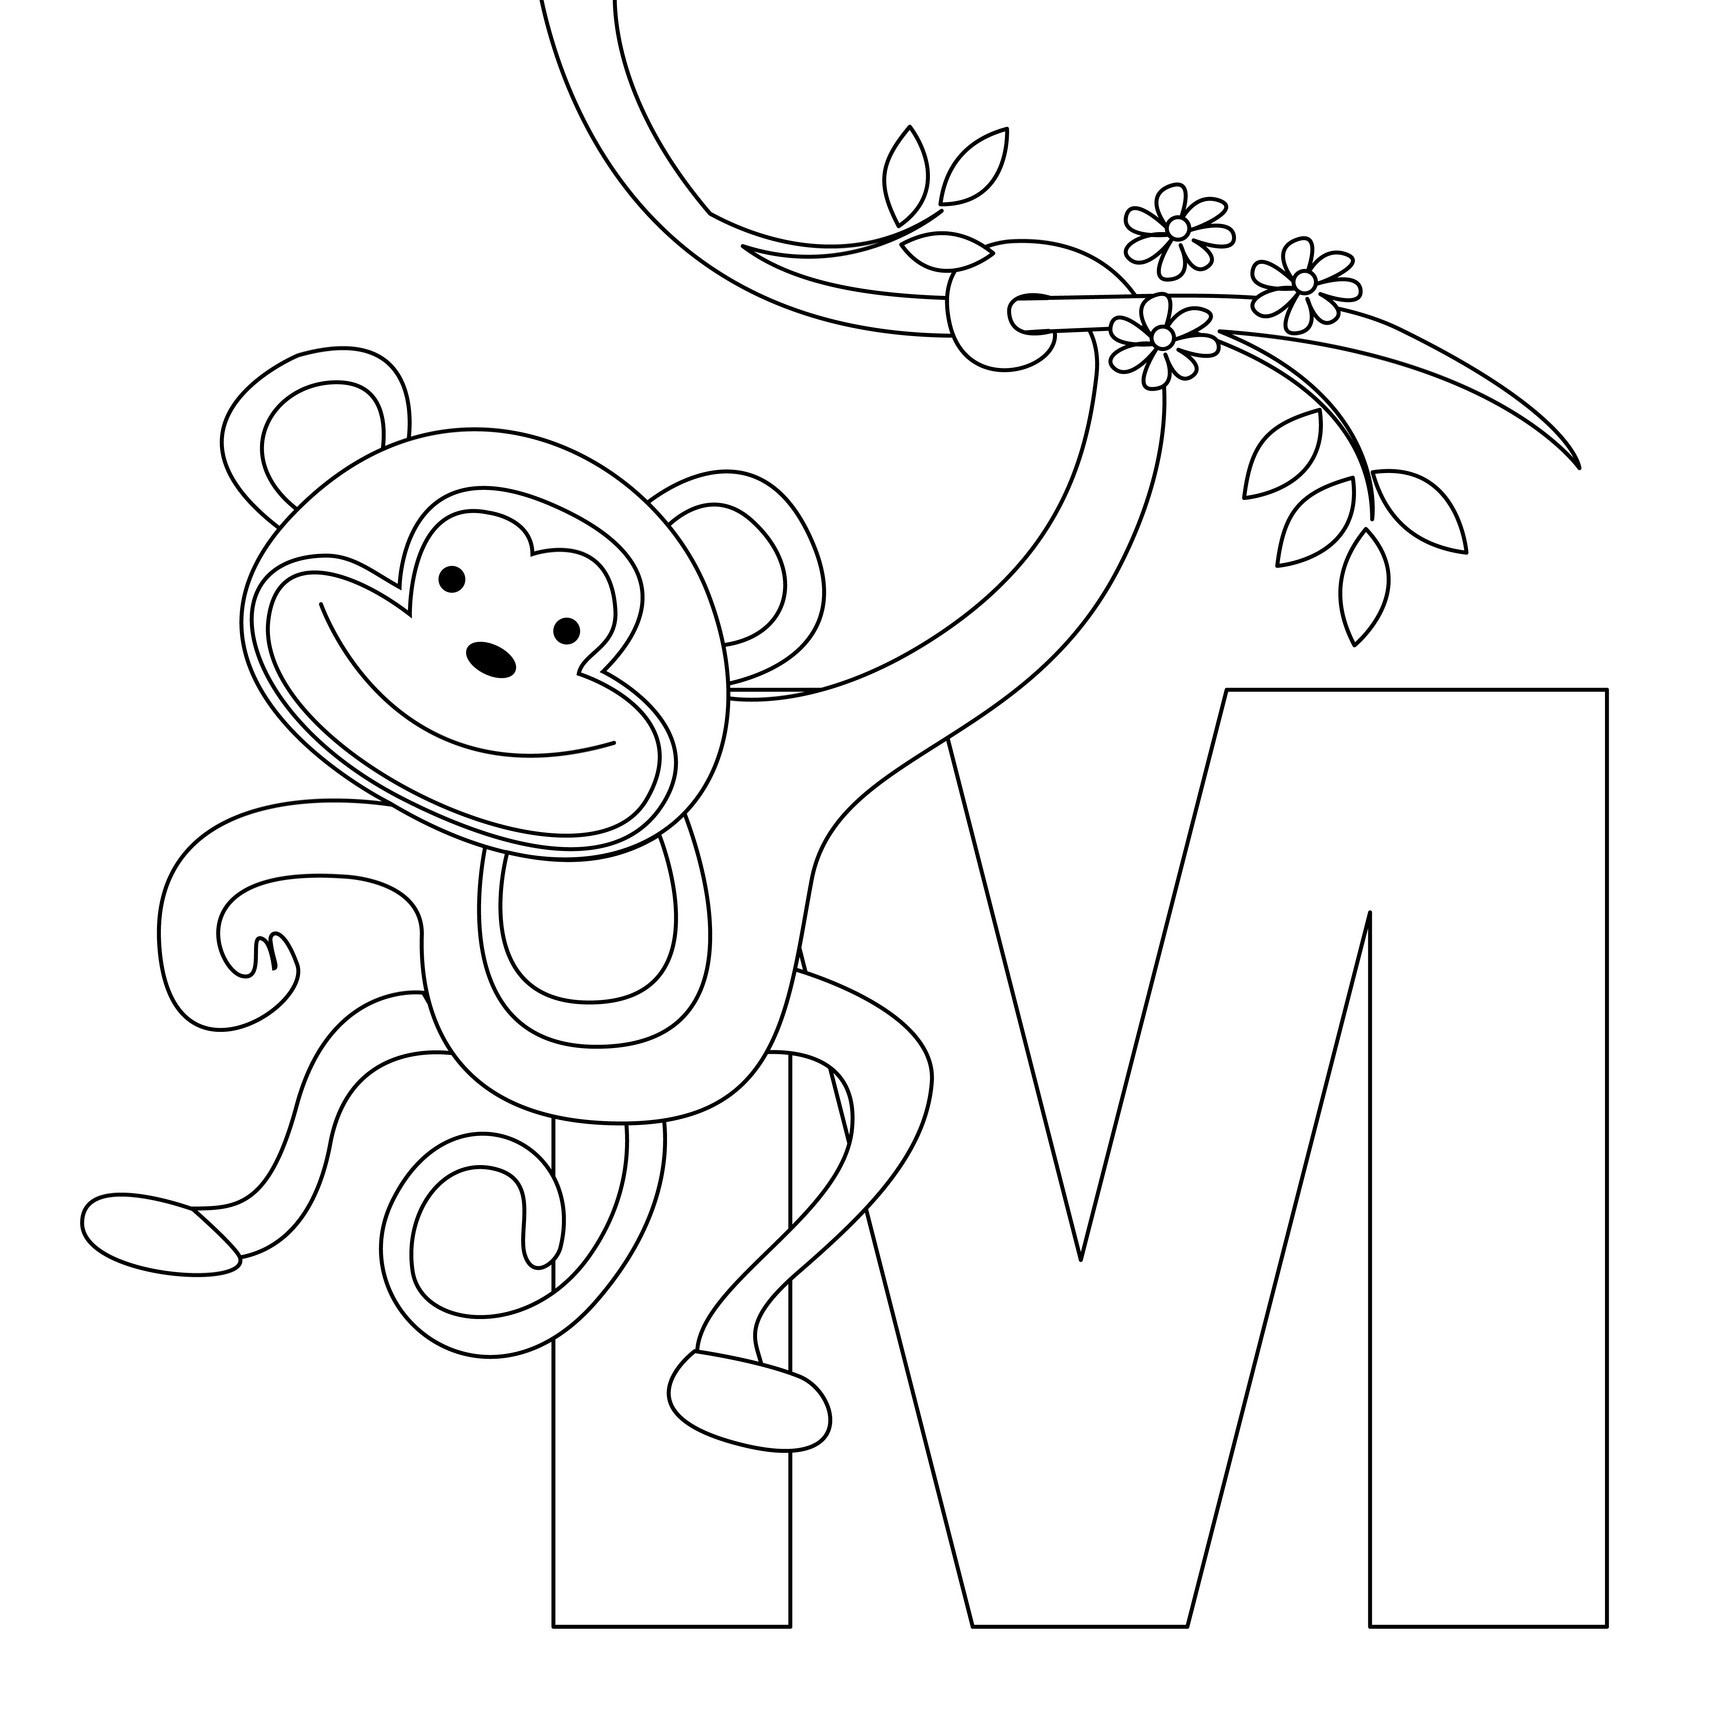 colouring pictures of alphabets free printable alphabet coloring pages for kids best alphabets colouring of pictures